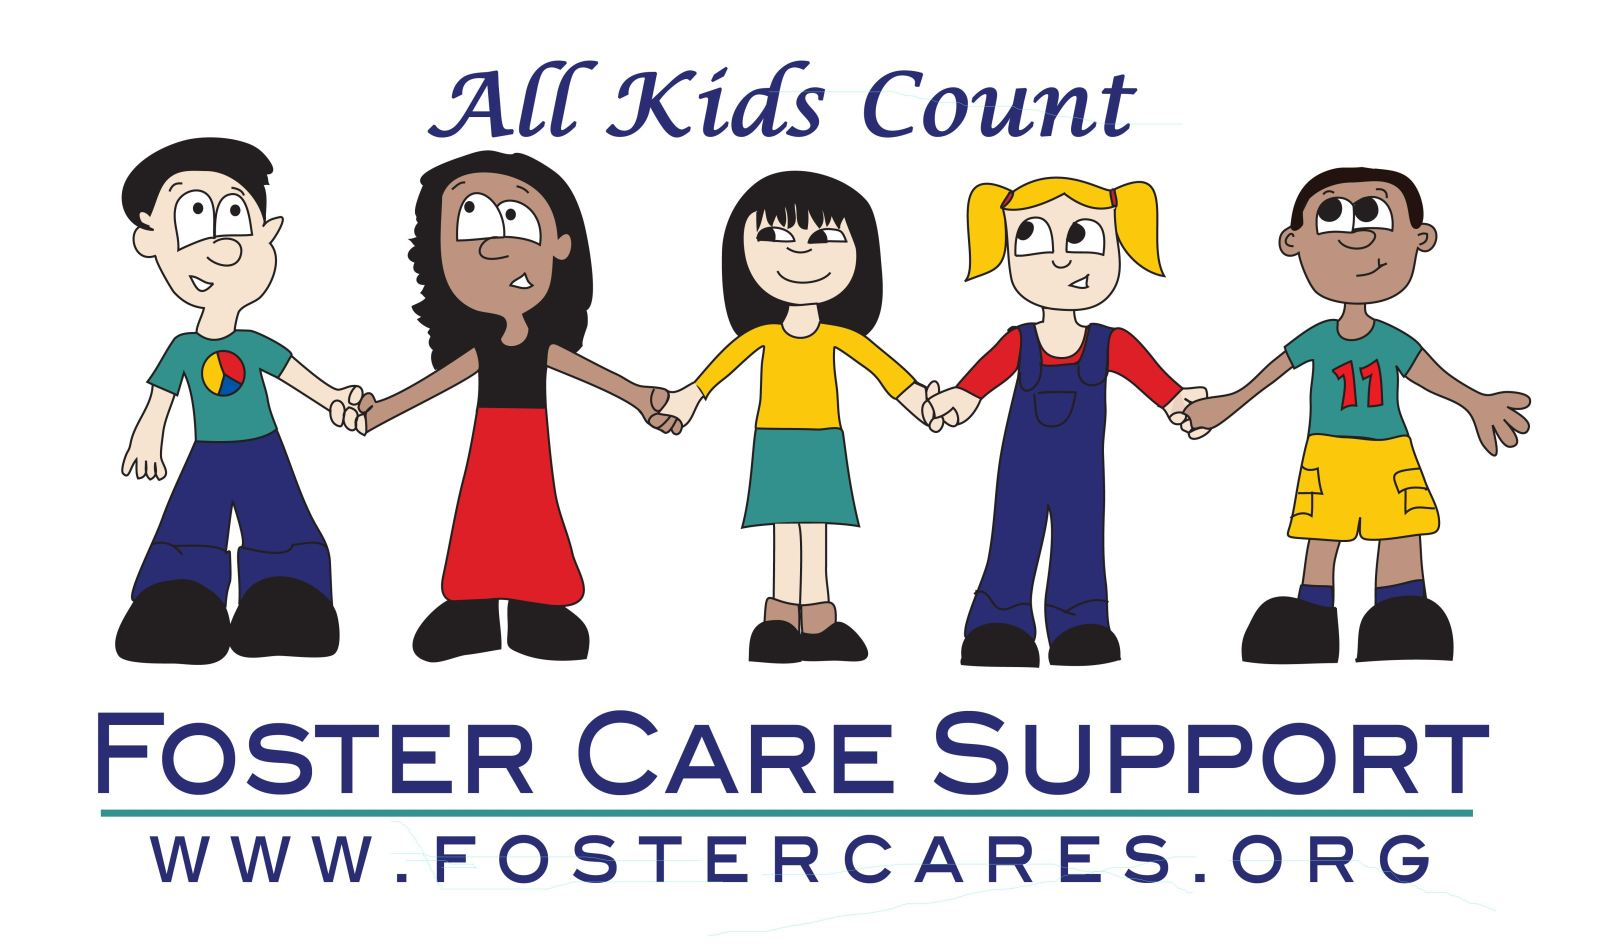 Caring clipart foster care. New logo cropped jpg